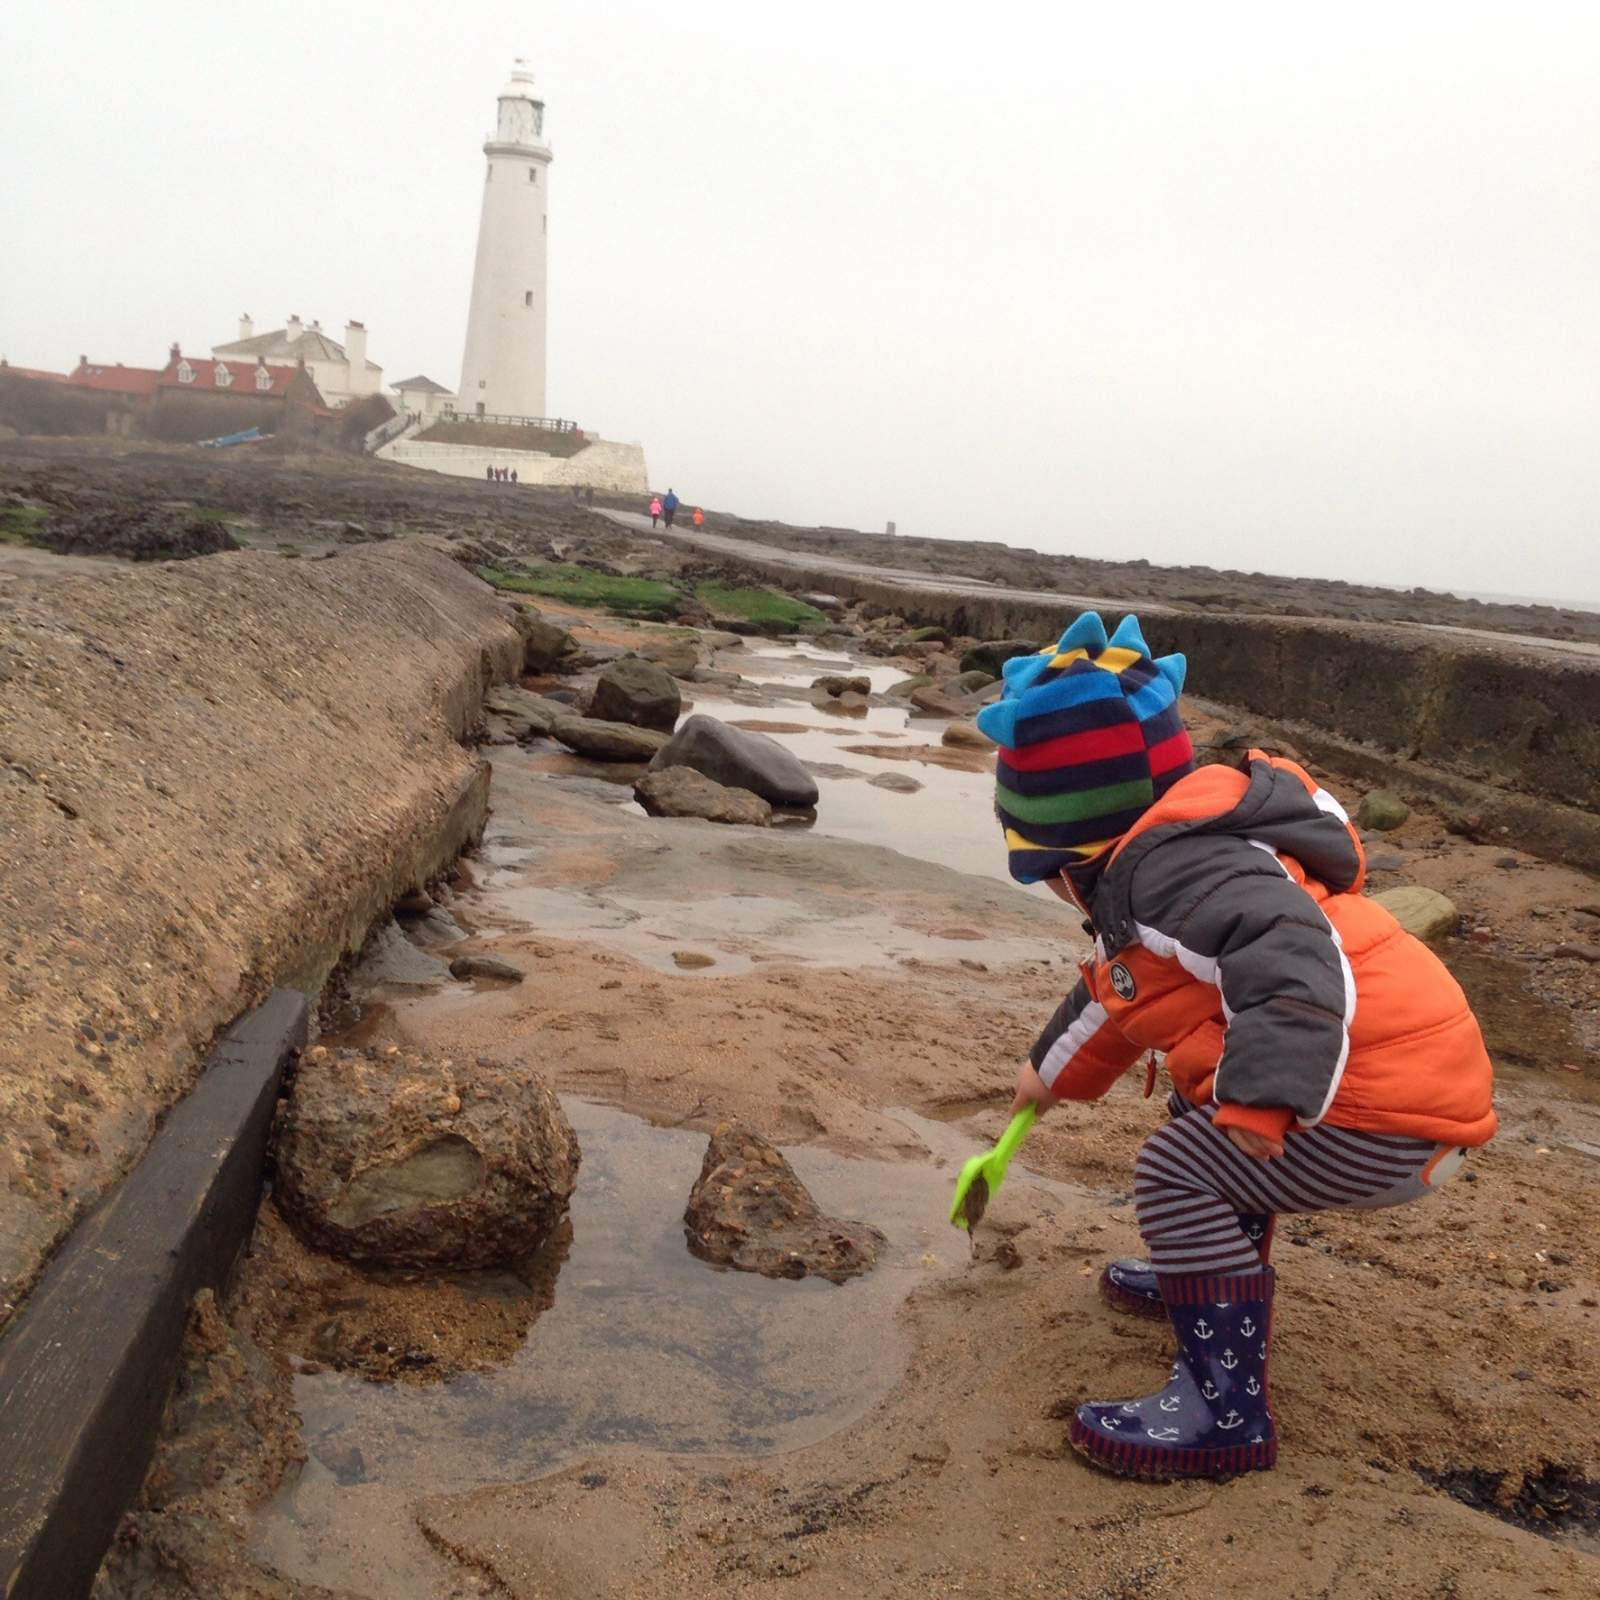 St Mary's Lighthouse for a play in the sand